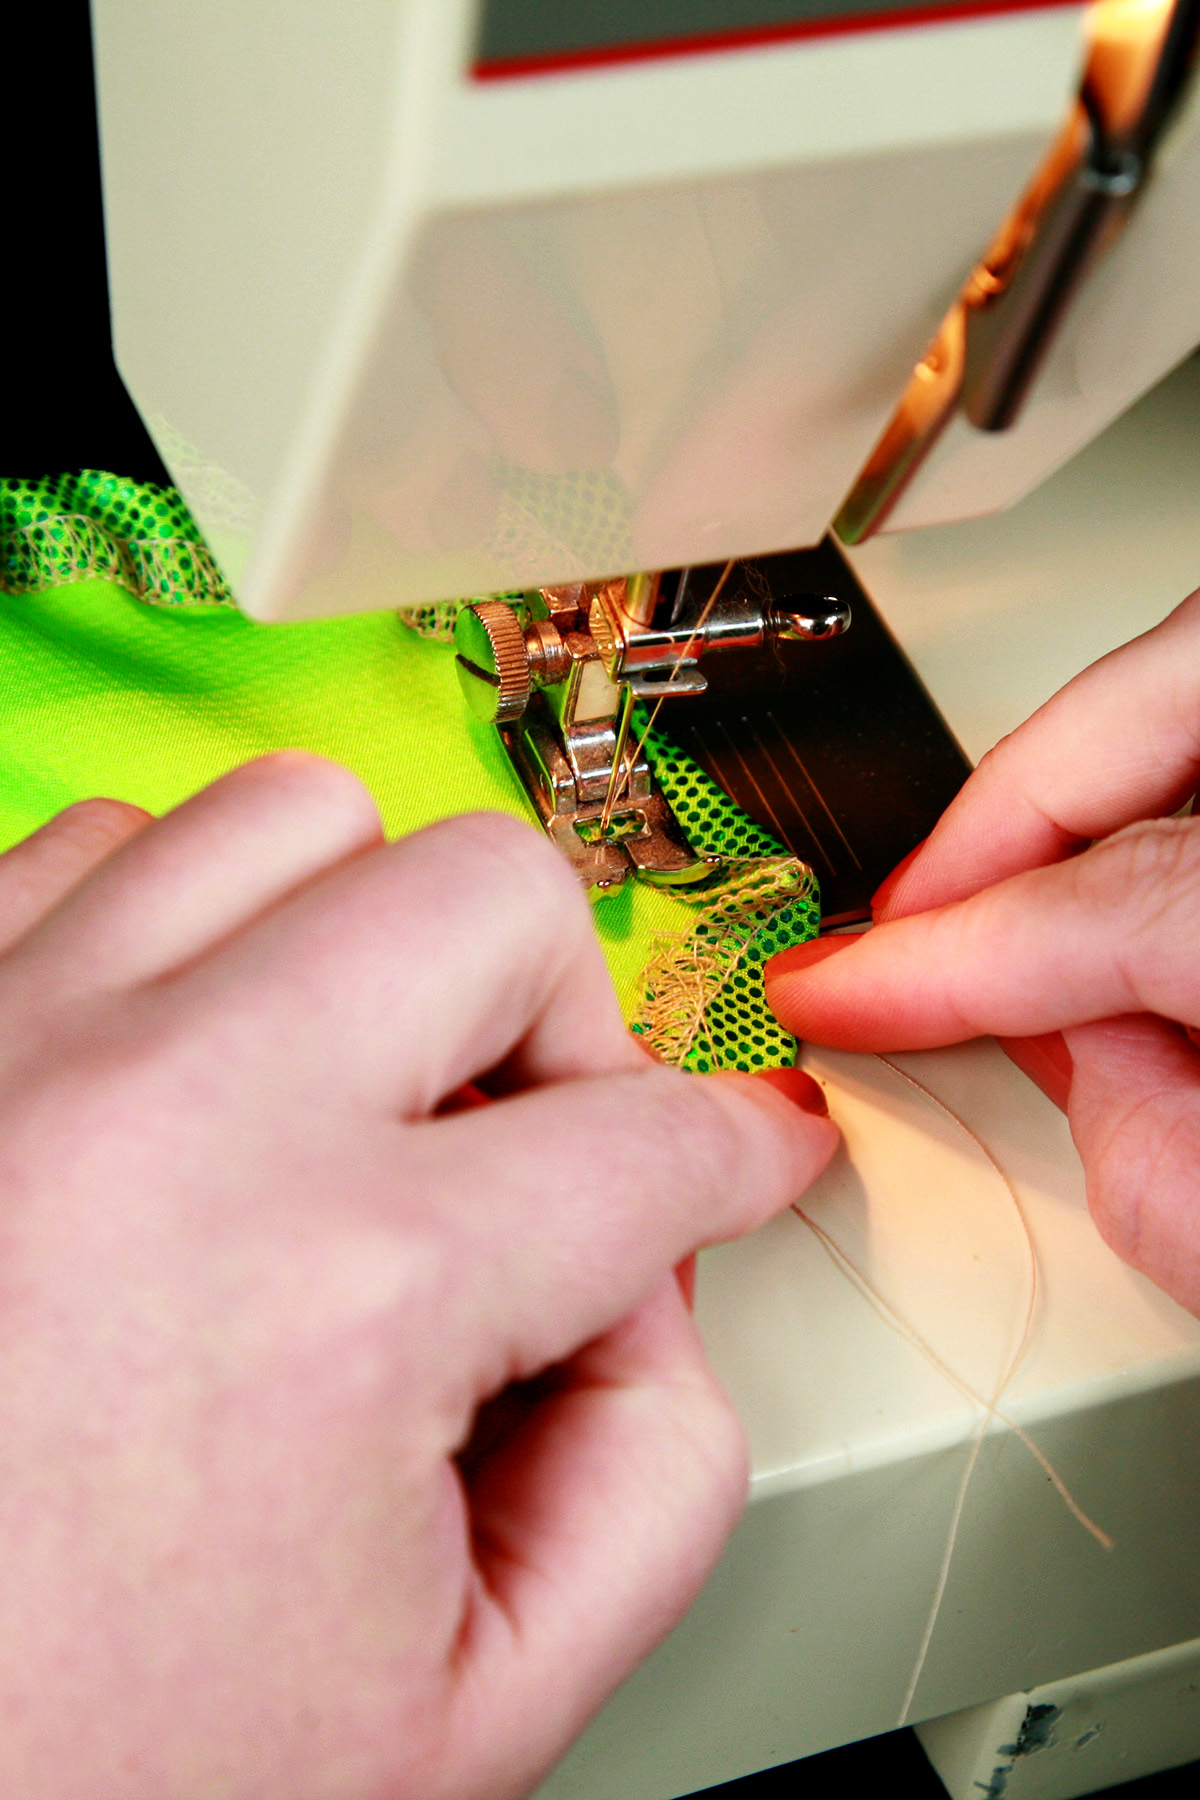 A pair of hands is sewing a bright green circle of fabric.